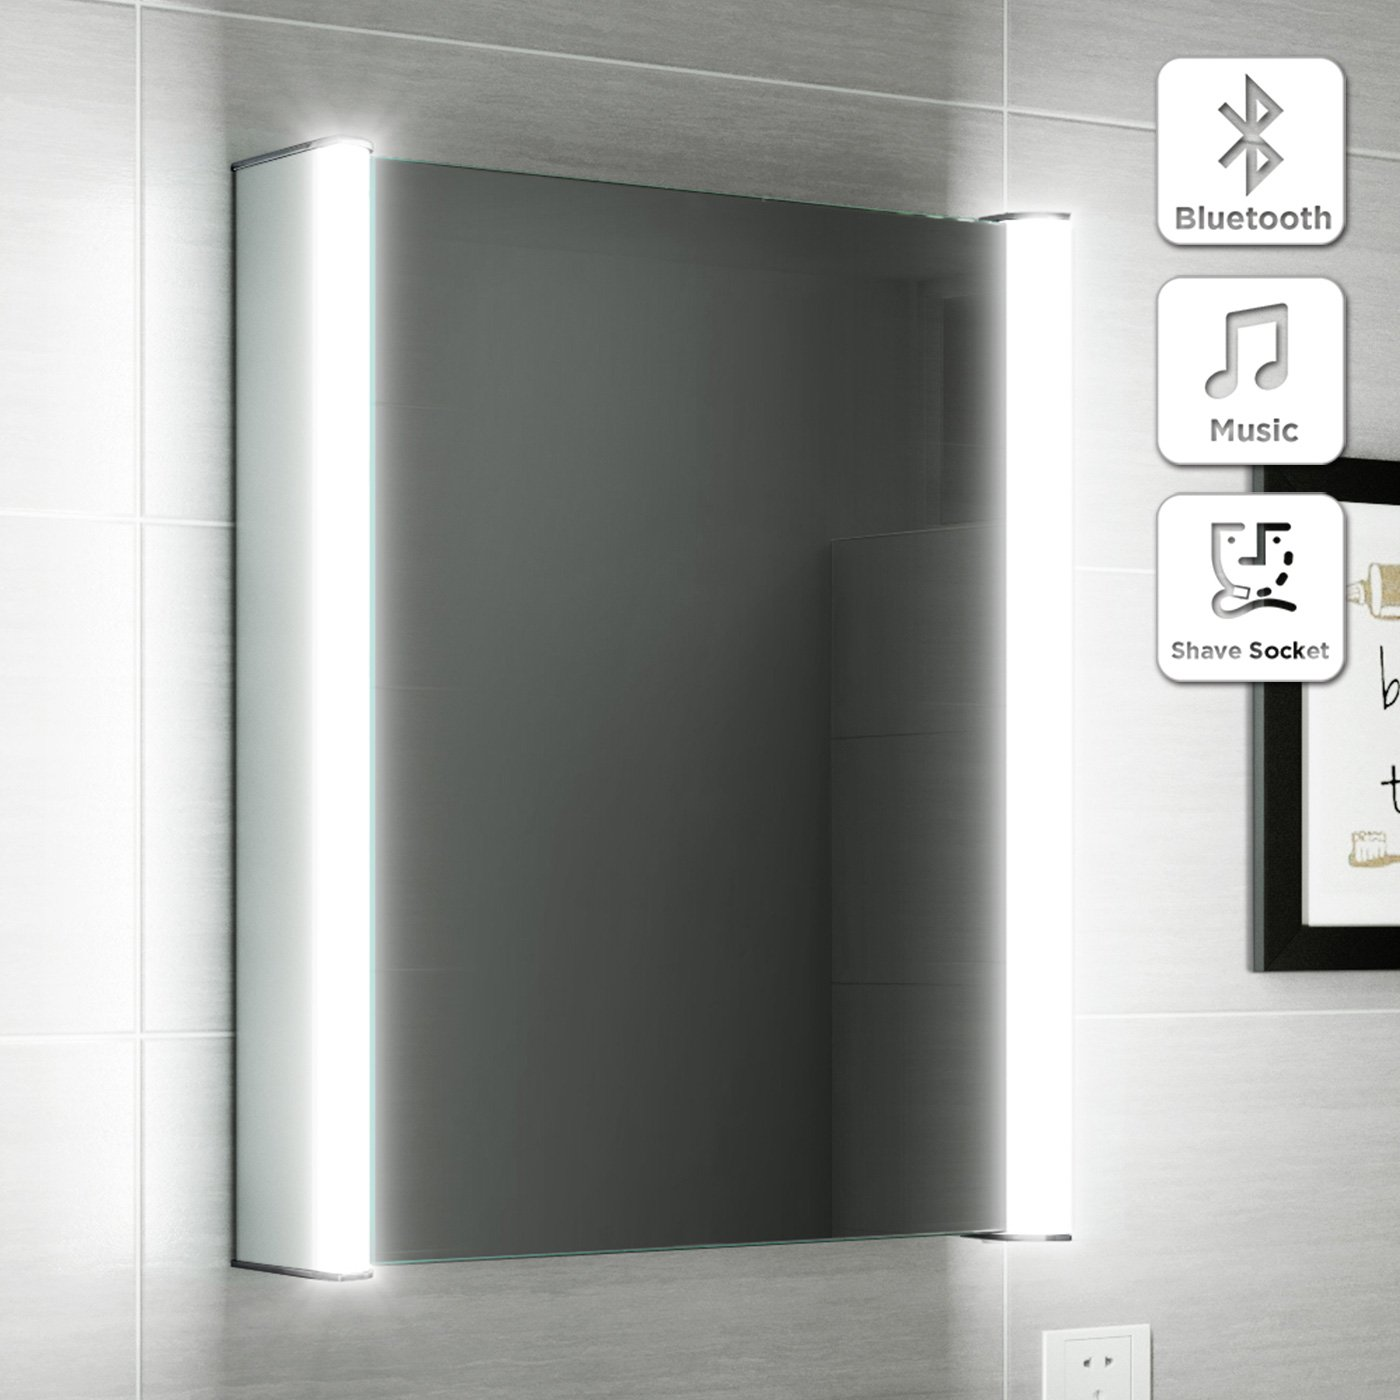 500 x 650 mm Illuminated LED Bathroom Mirror Cabinet with Motion